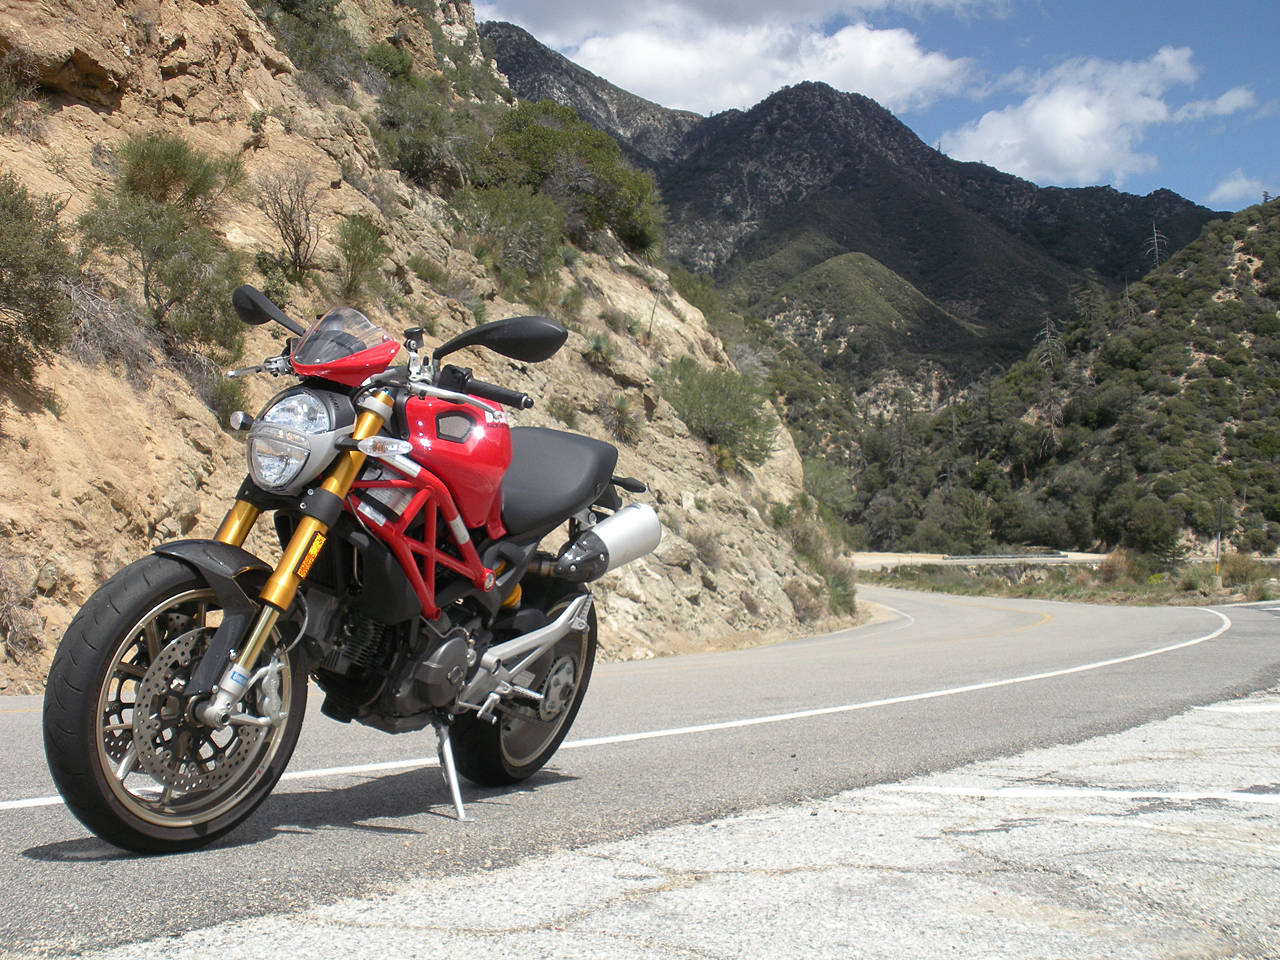 ducati monster 1100s wallpapers new motorcycles. Black Bedroom Furniture Sets. Home Design Ideas